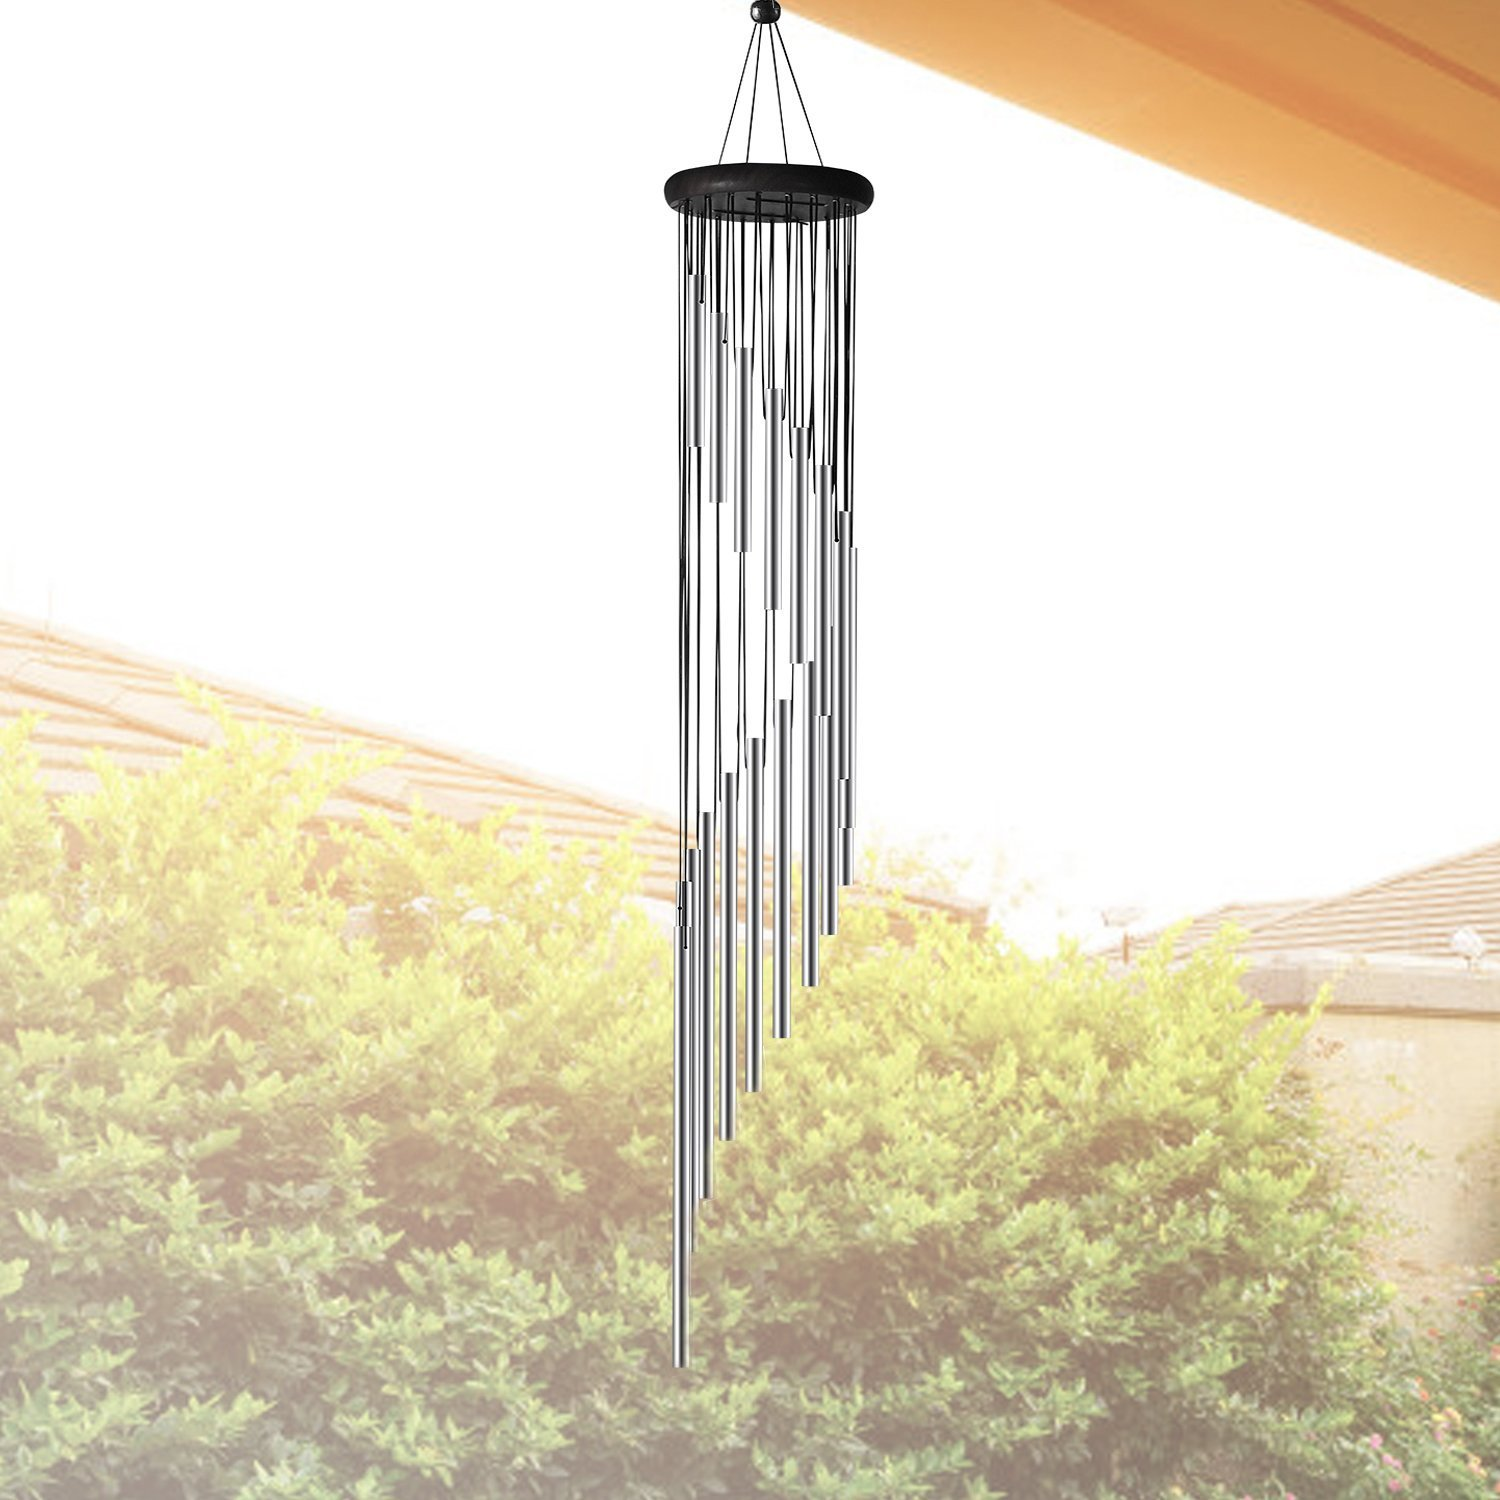 35 Large Wind Chimes - Amazing Grace Wind Chimes with 18 Roots Aluminum Alloy Tubes and Wood Design, Inspirational Collection for Outdoor Patio Backyard Home Decor (Silver) Erlvery DaMain